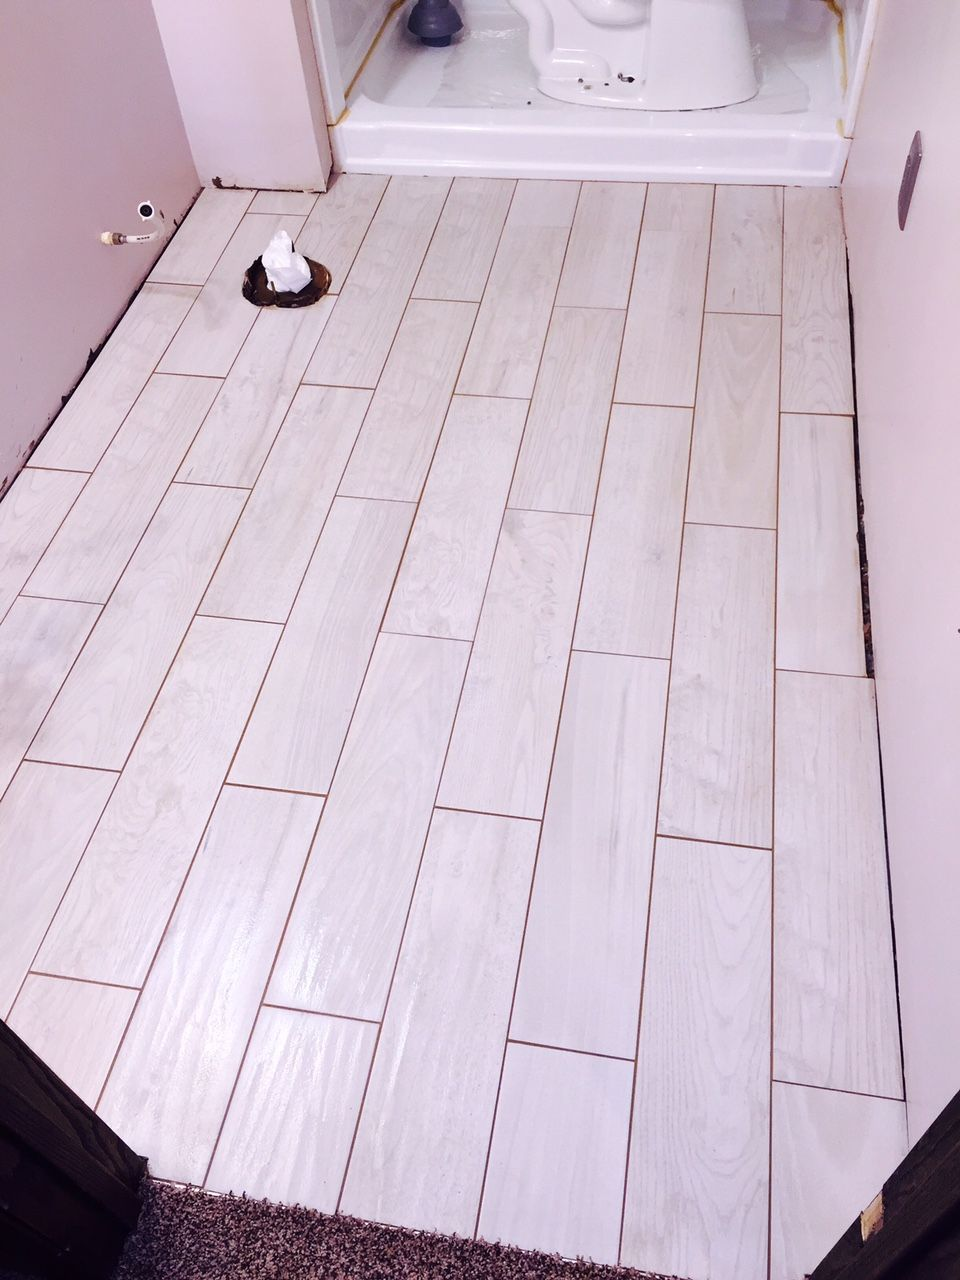 Diy Tile Flooring Installation Tile Flooring House And Pirate